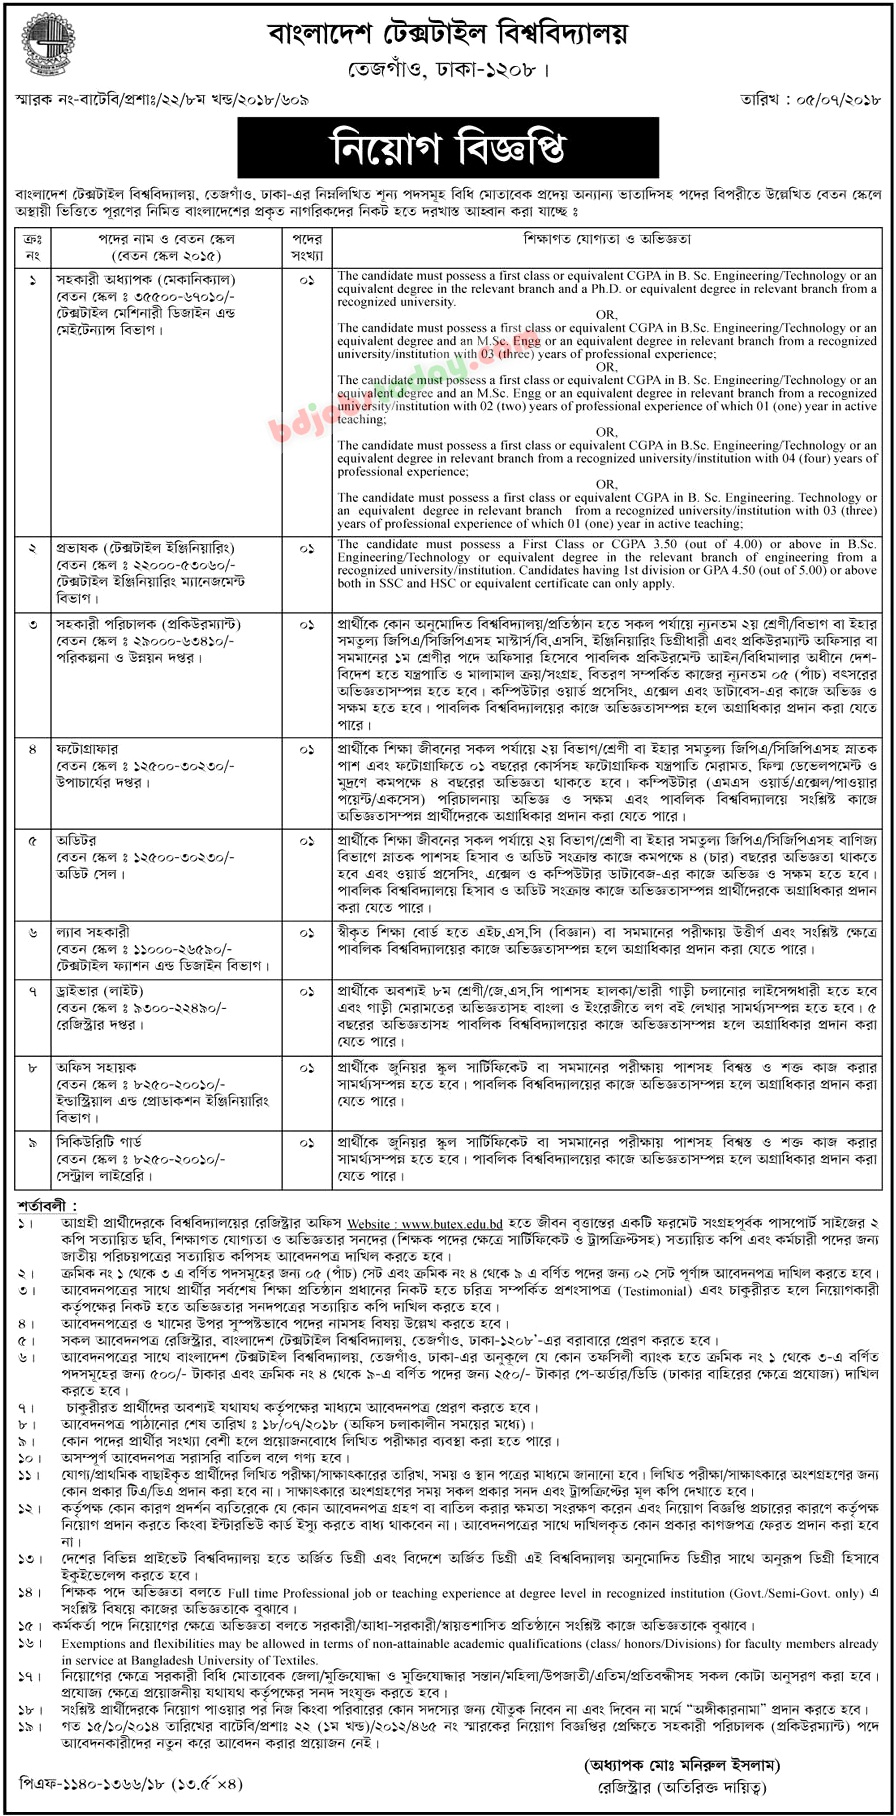 Bangladesh Textile University jobs